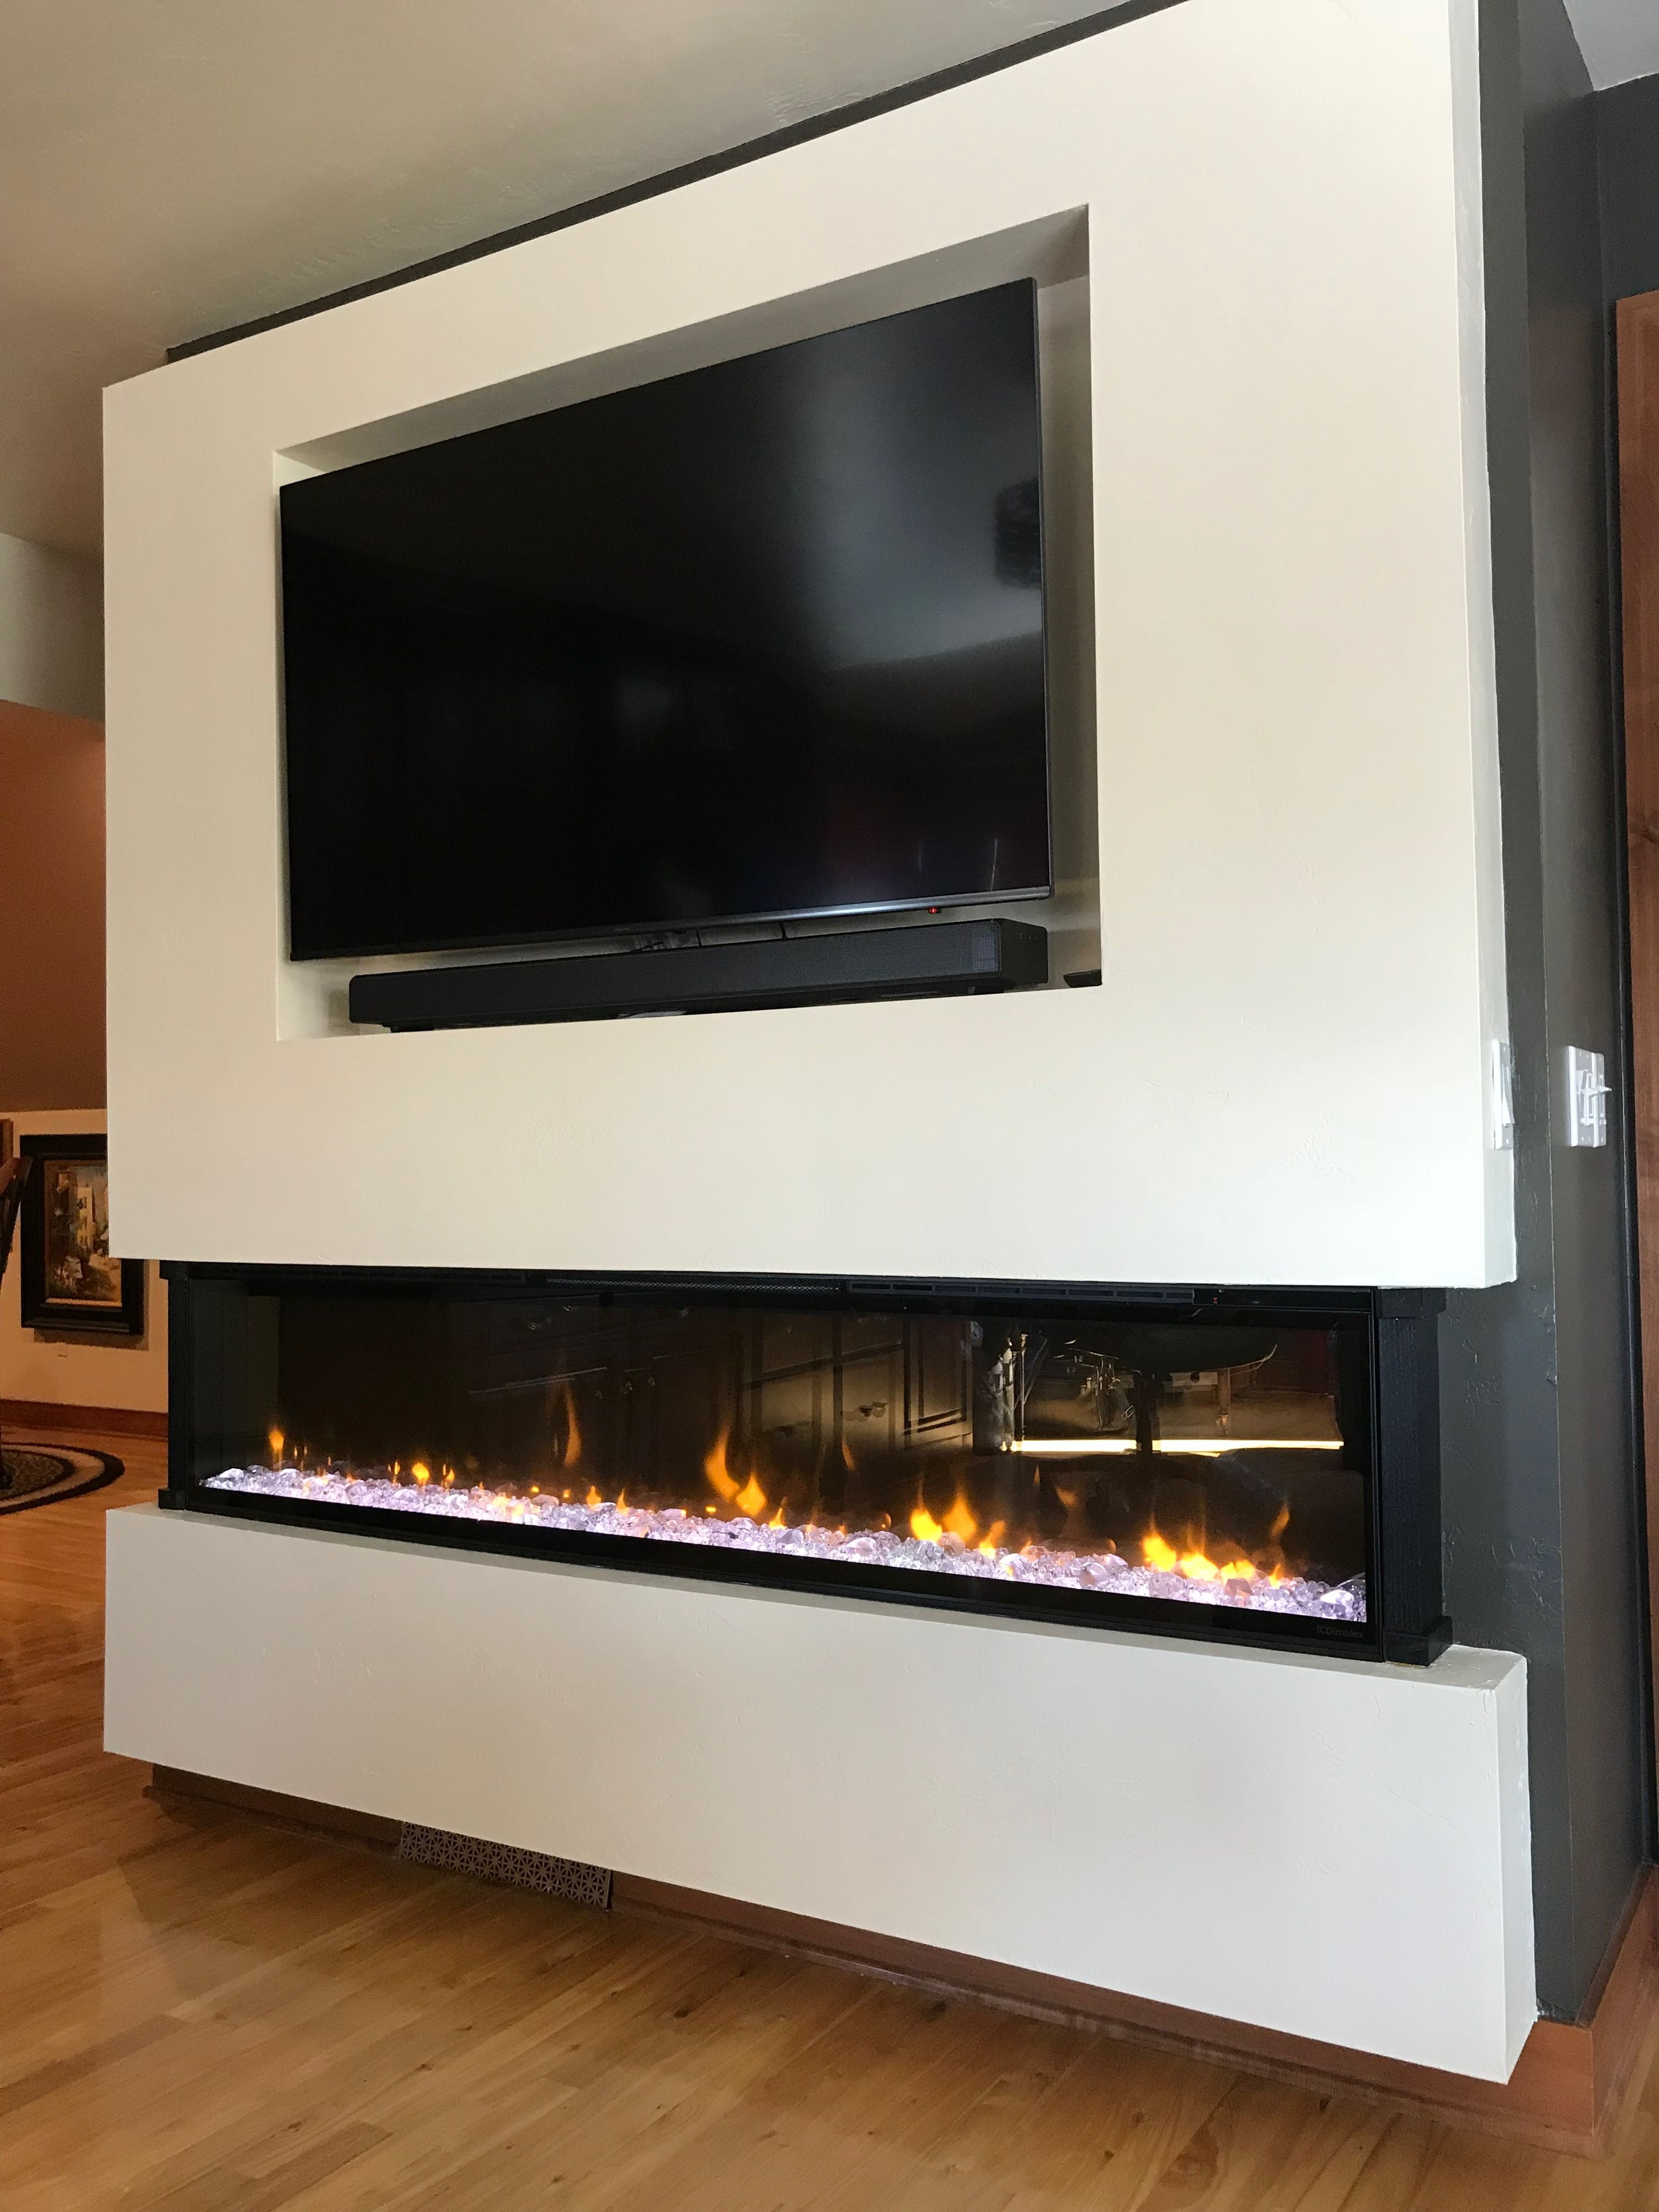 dimplex fireplace entertainment center on diy project completed dimplex xlf74 linear electric fireplace insert installed floating wall for f corner fireplace linear fireplace living room decor modern dimplex xlf74 linear electric fireplace